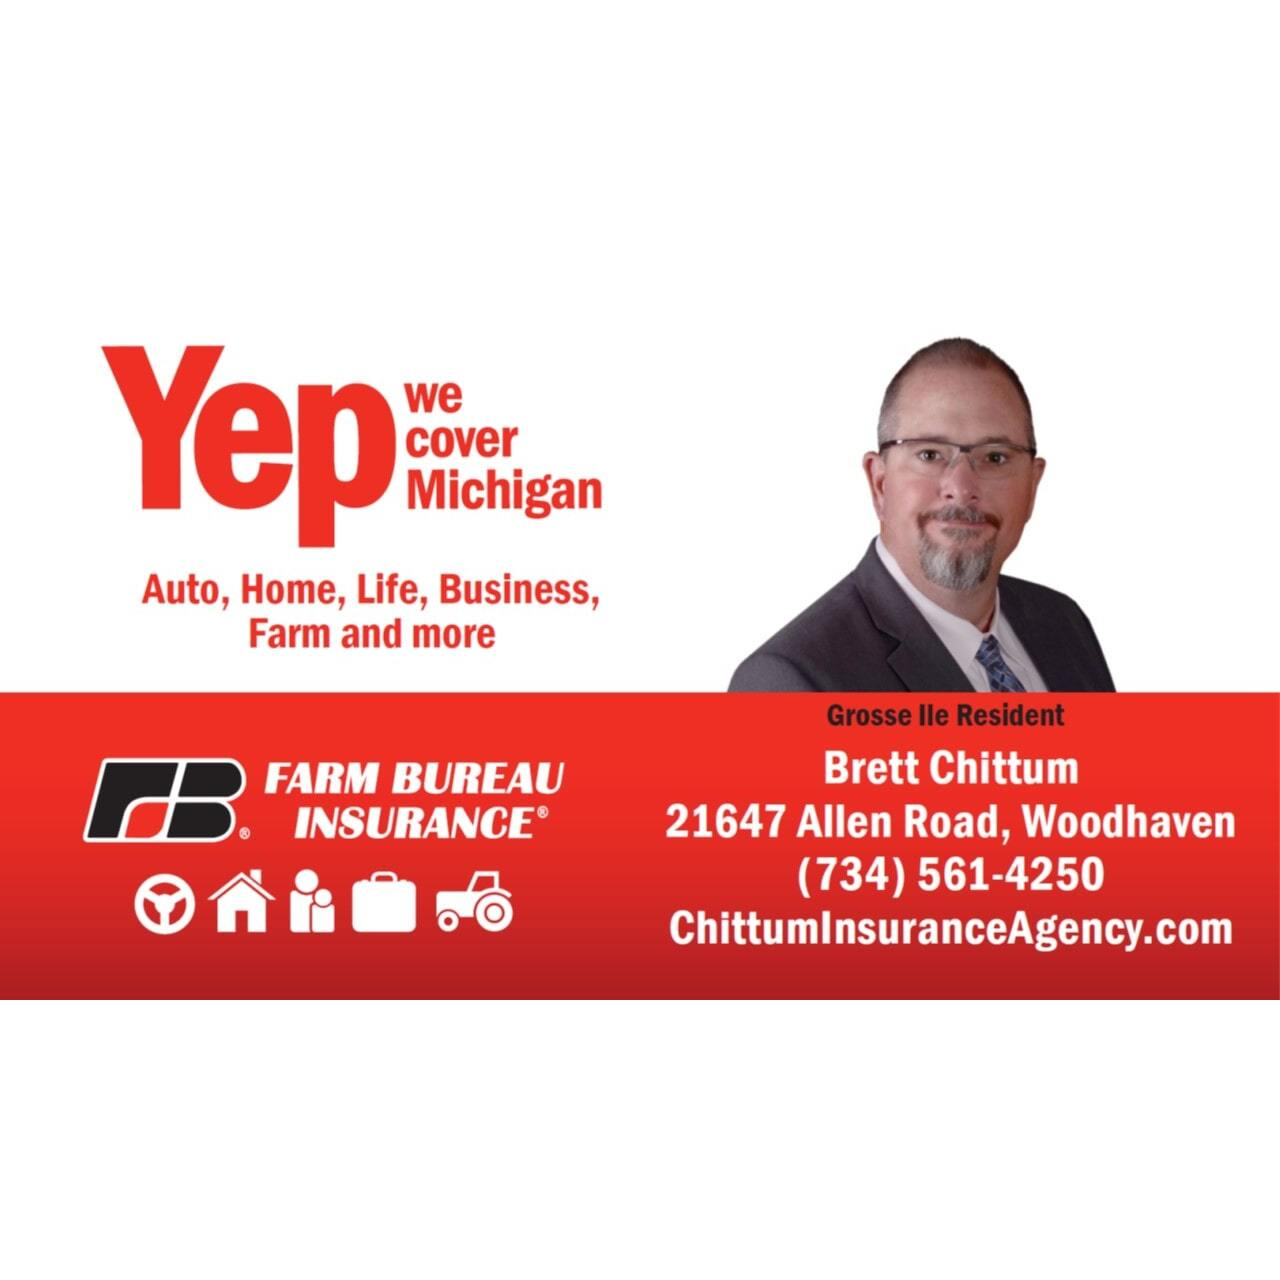 Chittum Insurance Agency - Farm Bureau